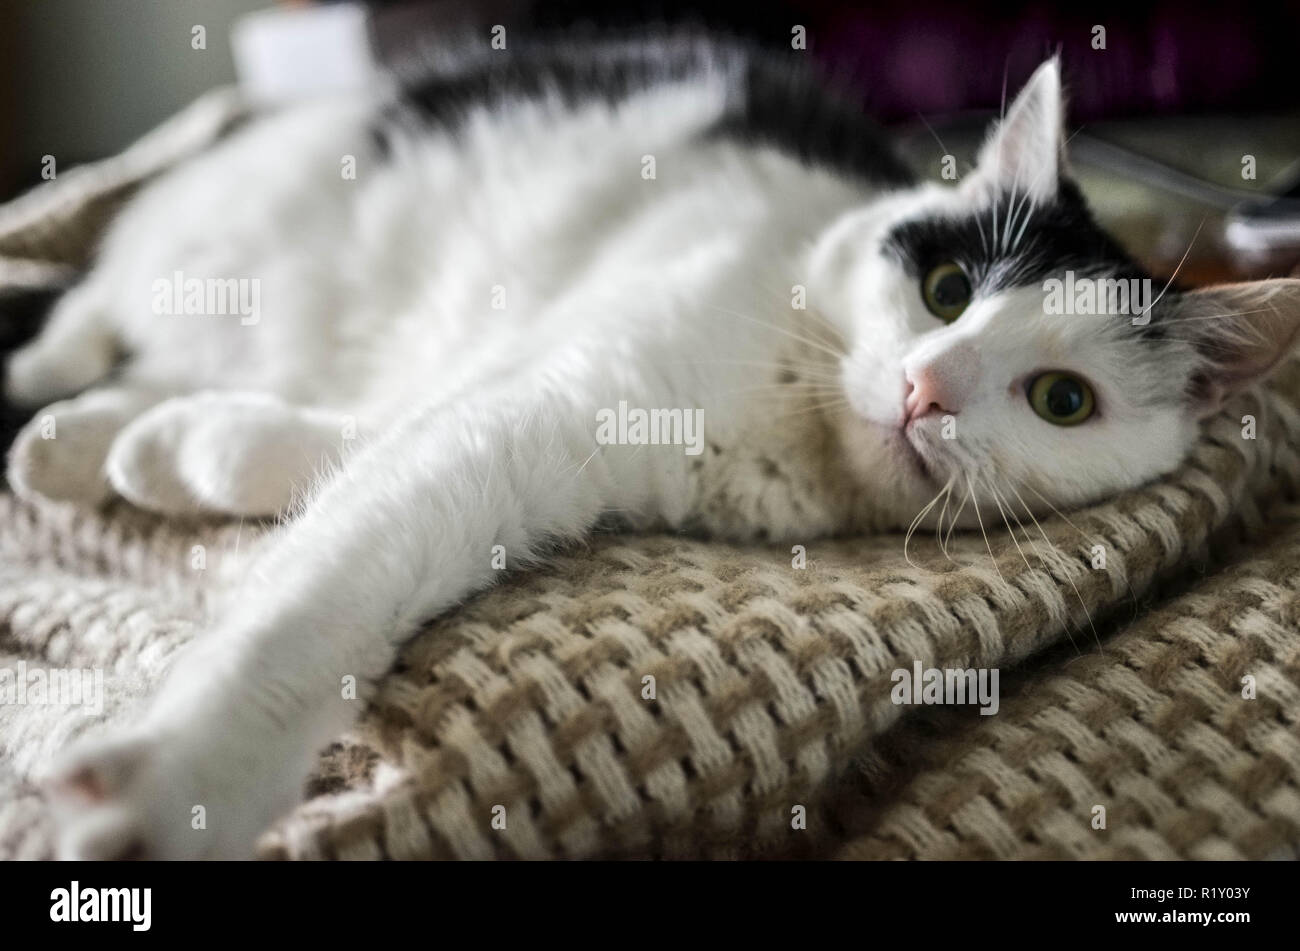 Cute black and white cat, indoor photo - Stock Image